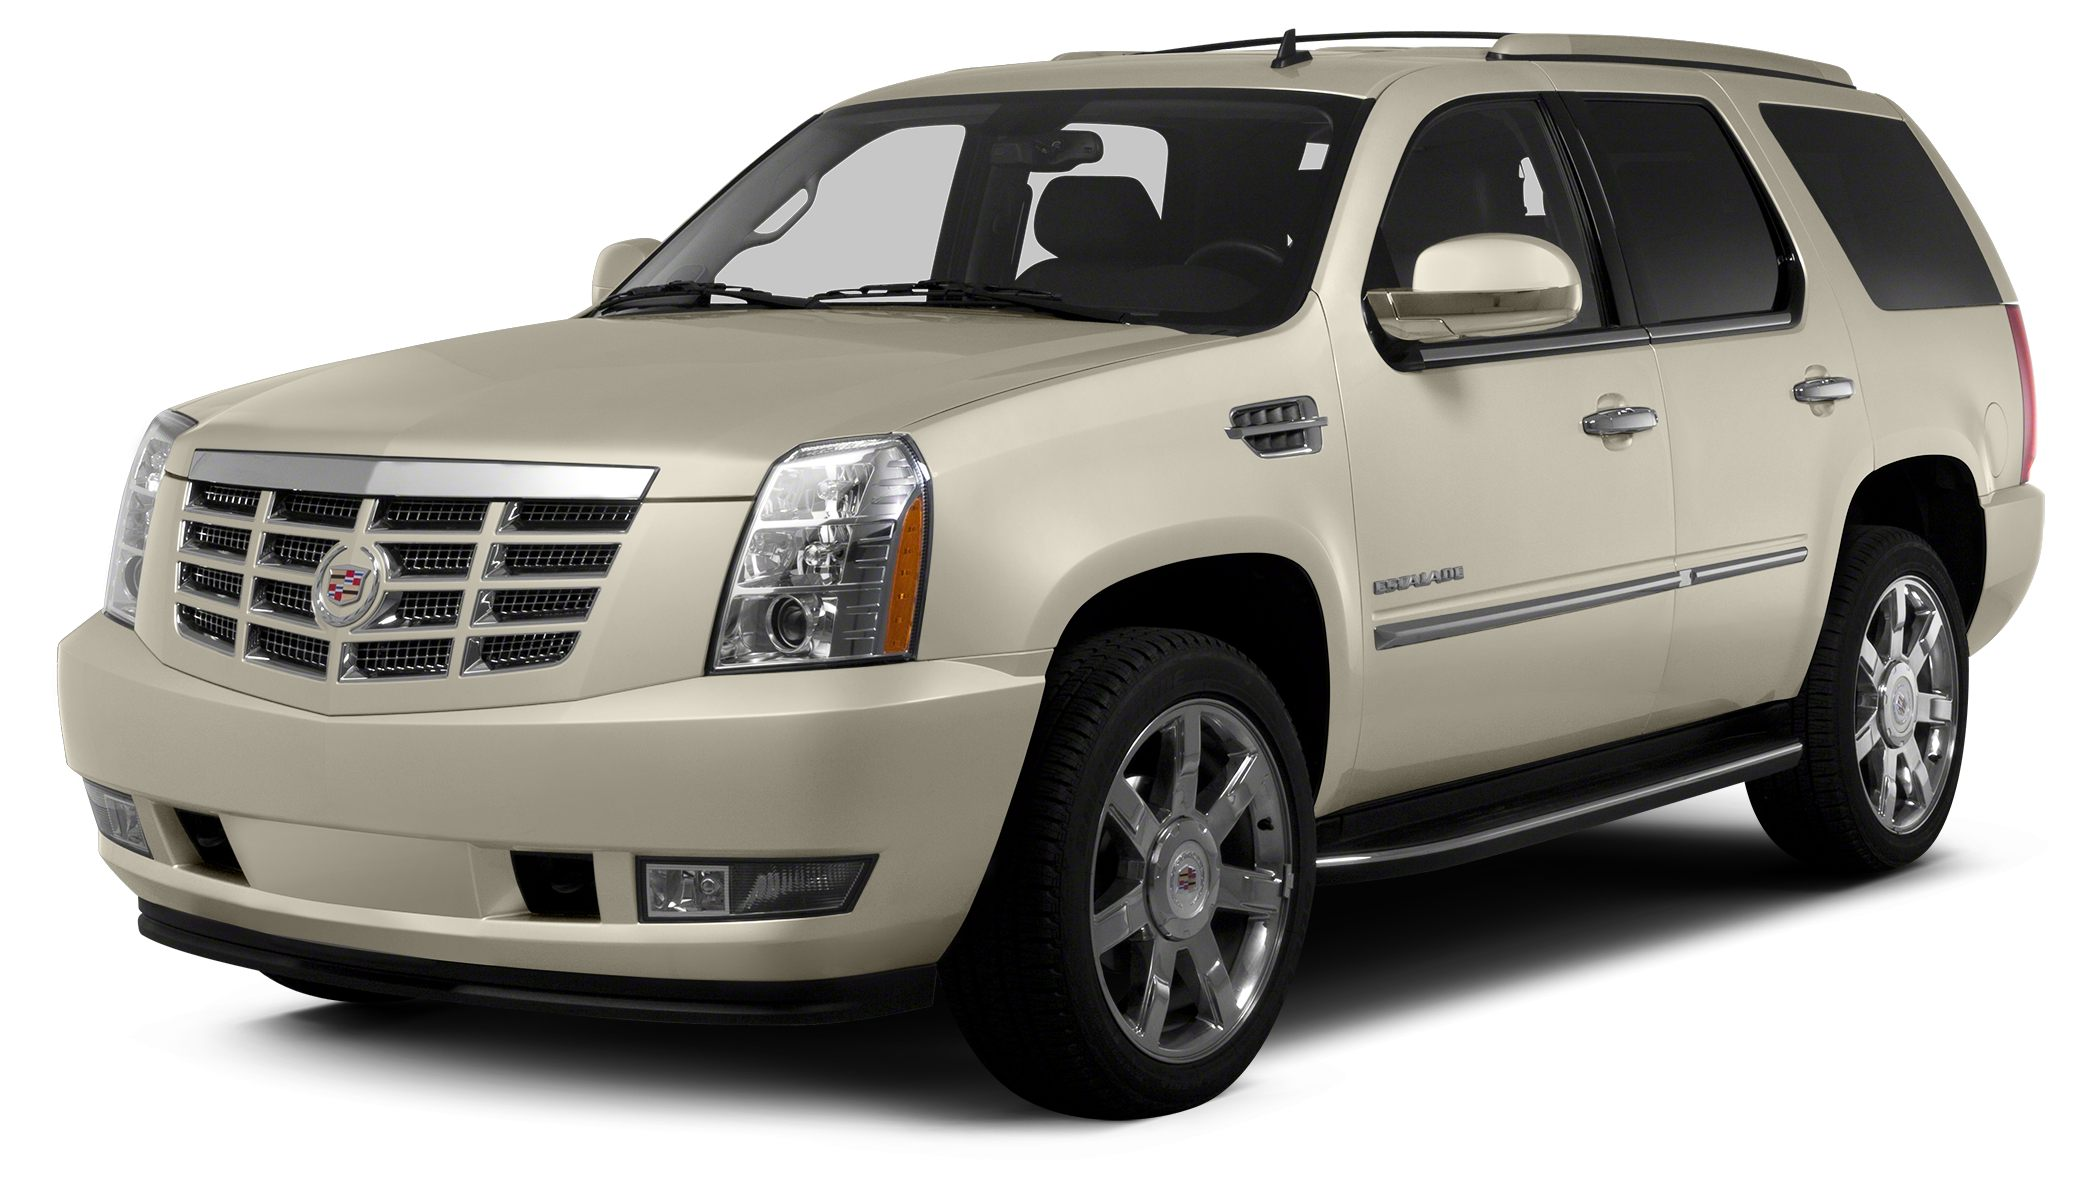 2013 Cadillac Escalade Luxury Miles 73588Color White Stock GR104067A VIN 1GYS4BEFXDR256289